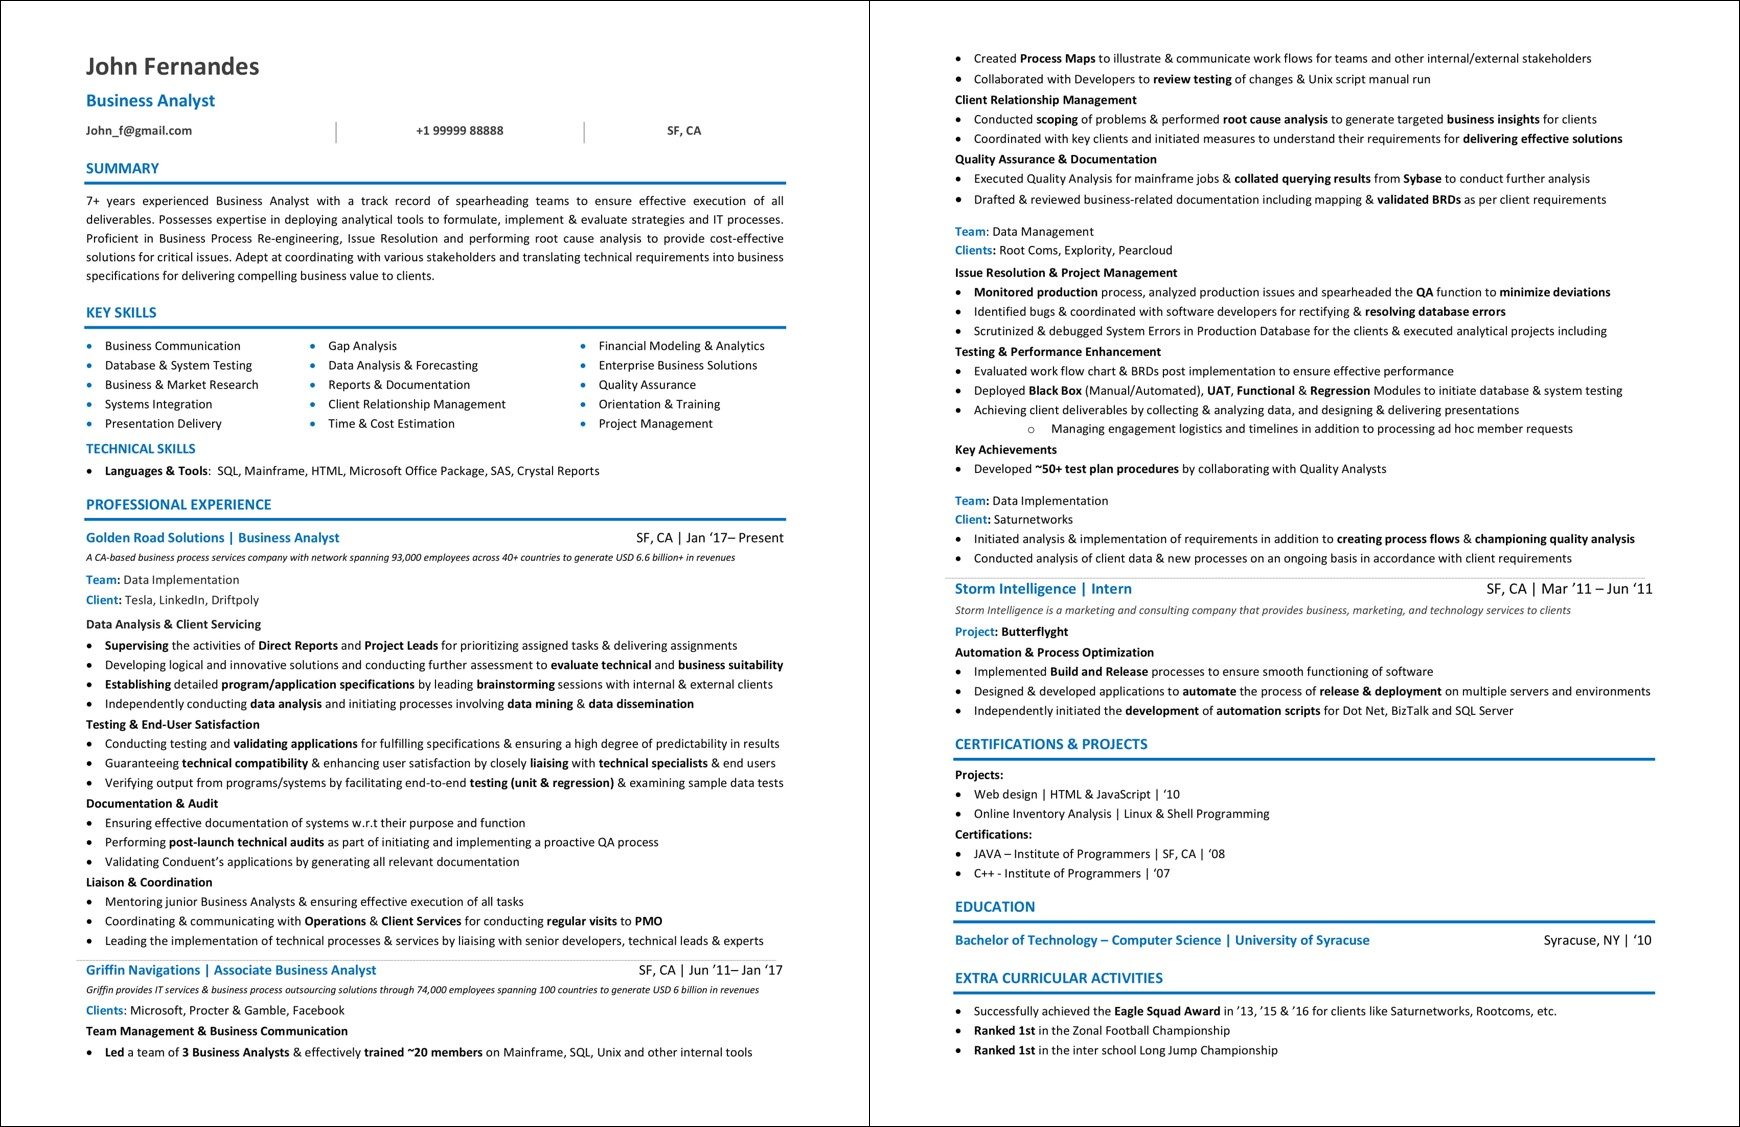 business analyst resume  examples  u0026 2019 guide    best